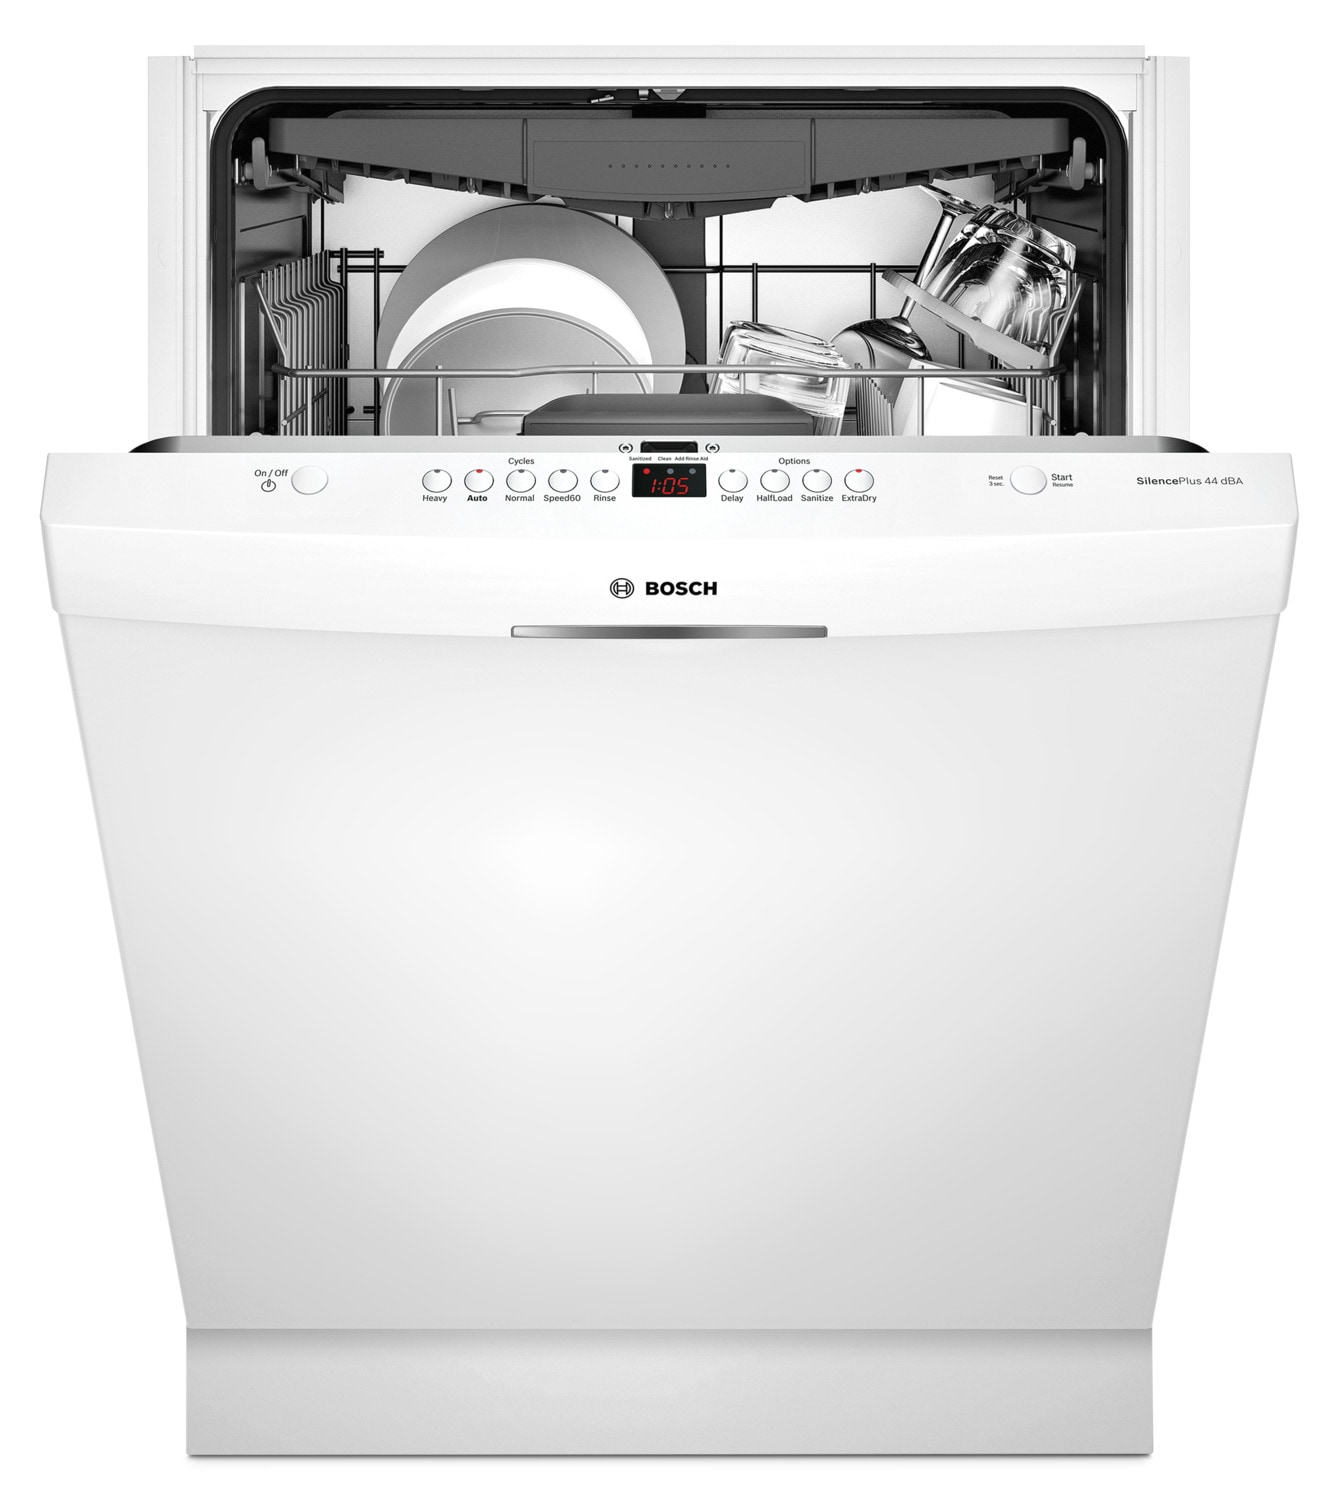 Clean-Up - Bosch 300 Series Scoop Handle Built-In Dishwasher – SHSM63W52N